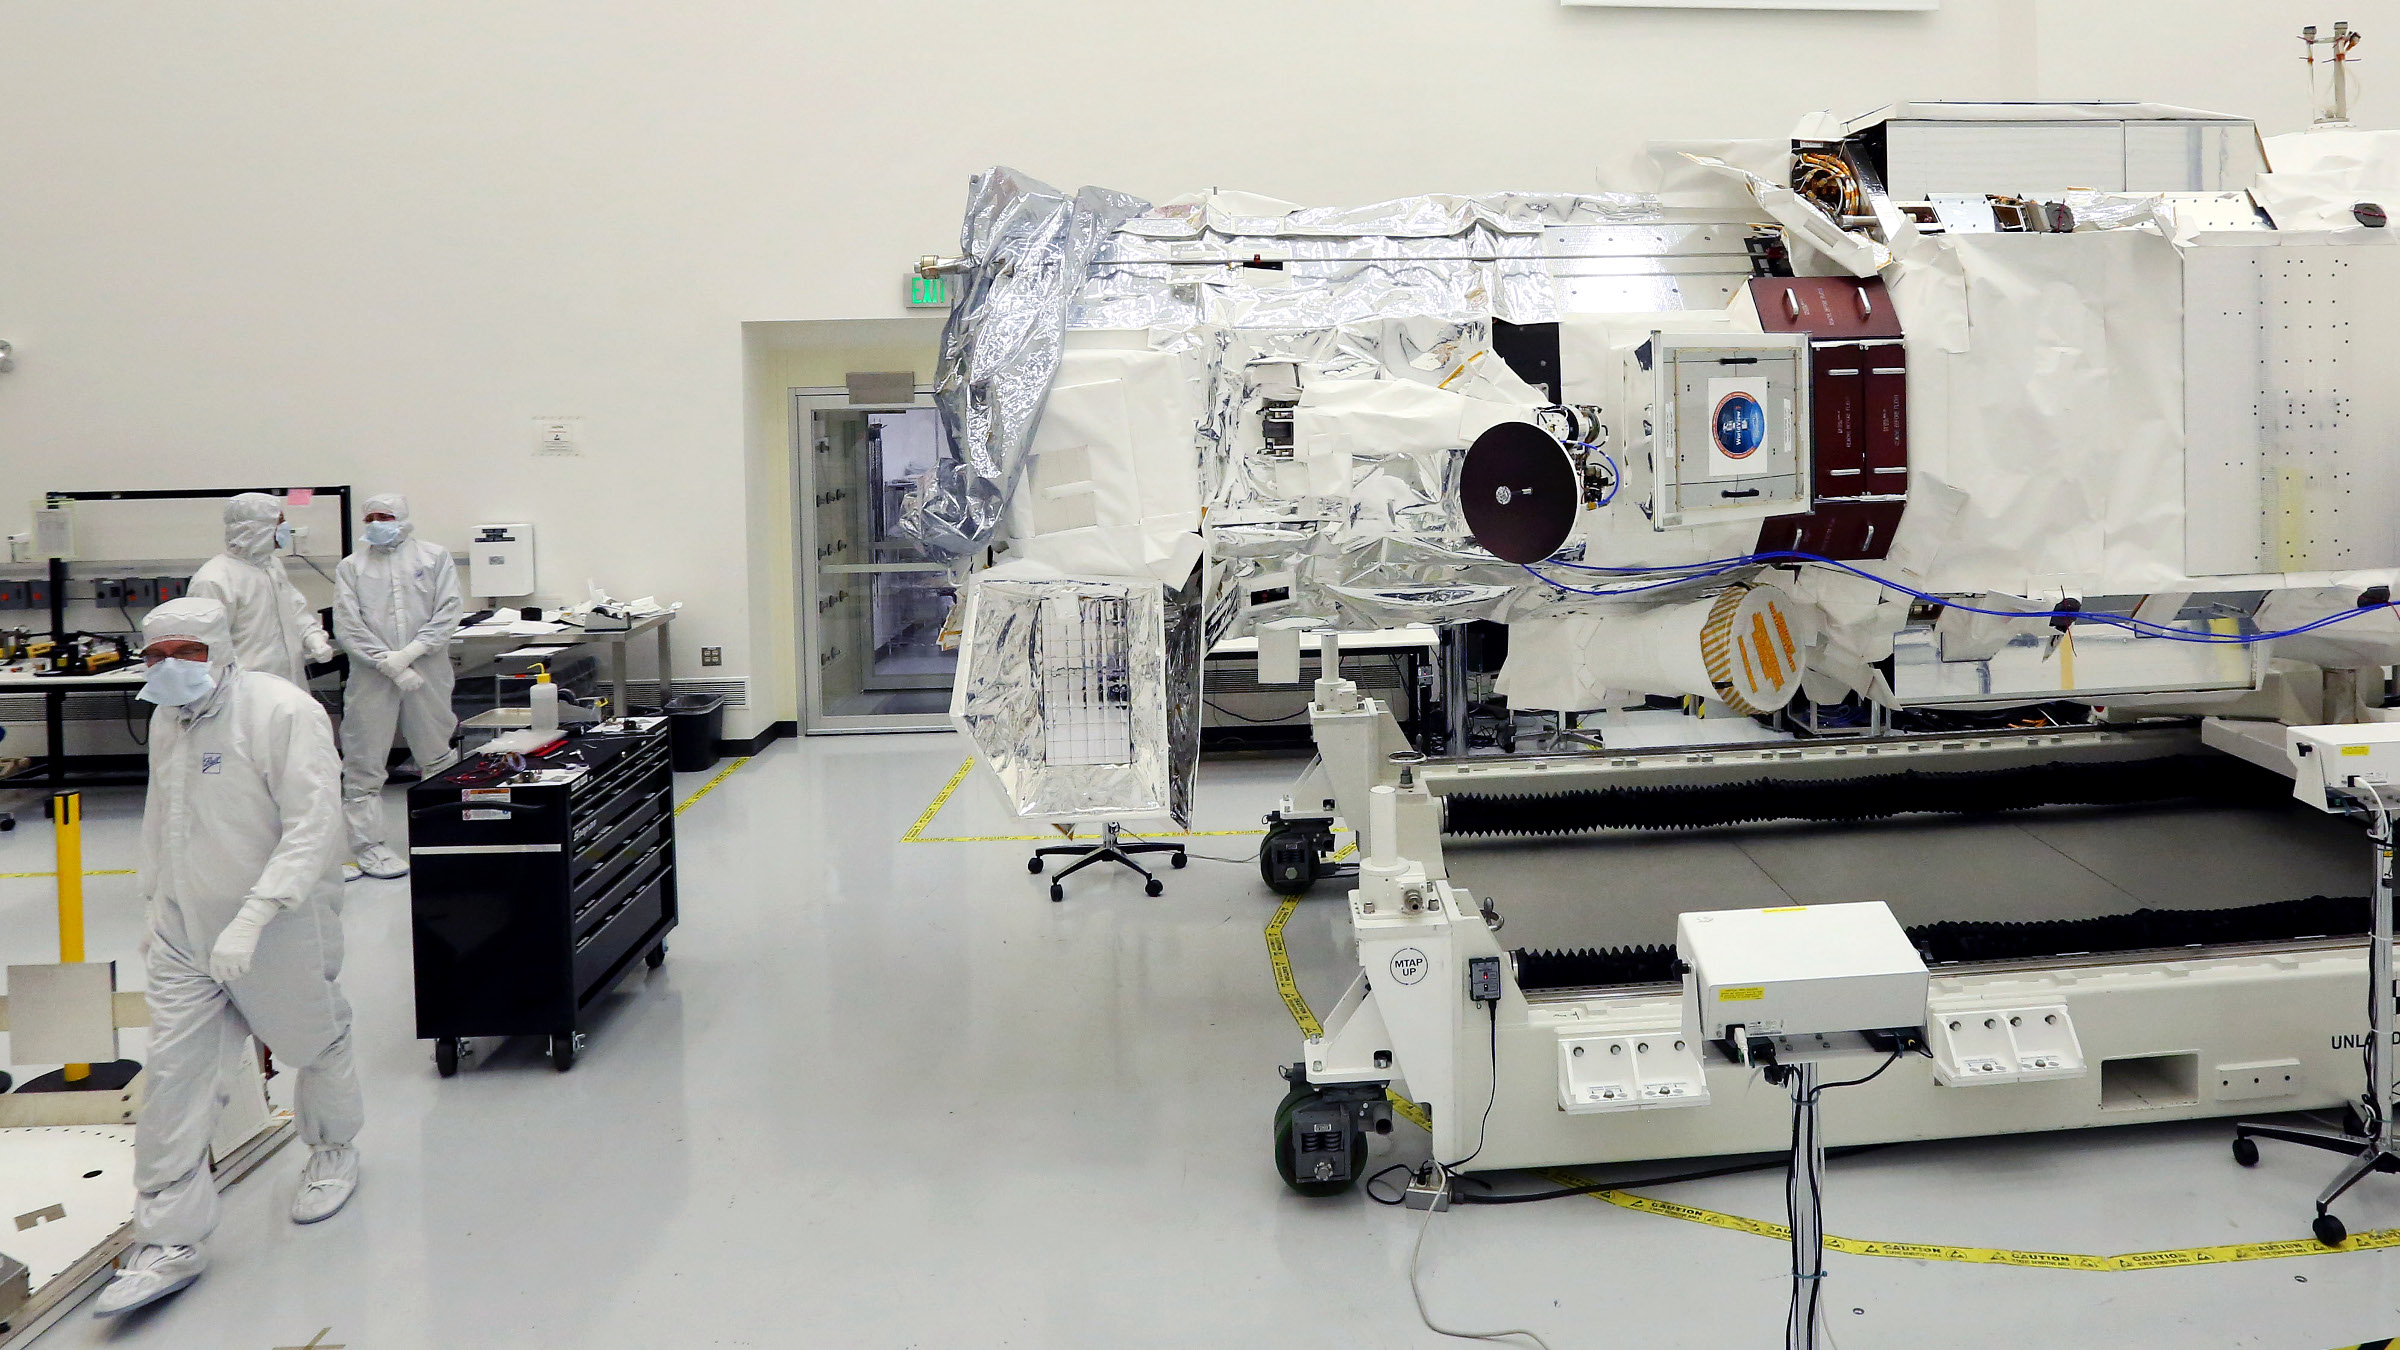 Technicians and scientists work in a clean room, as final tests are made on WorldView-3, right, a new high-resolution imaging satellite owned by commercial satellite company DigitalGlobe, at Ball Aerospace in Boulder, Colo., on Tuesday, May 13, 2014. The initial launch window is Aug. 13-14. From its planned orbit of about 383 miles, the satellite will be capable of capturing images of objects as small as 1 foot across, although government security regulations prevent the company from selling images with resolution finer than about 20 inches.